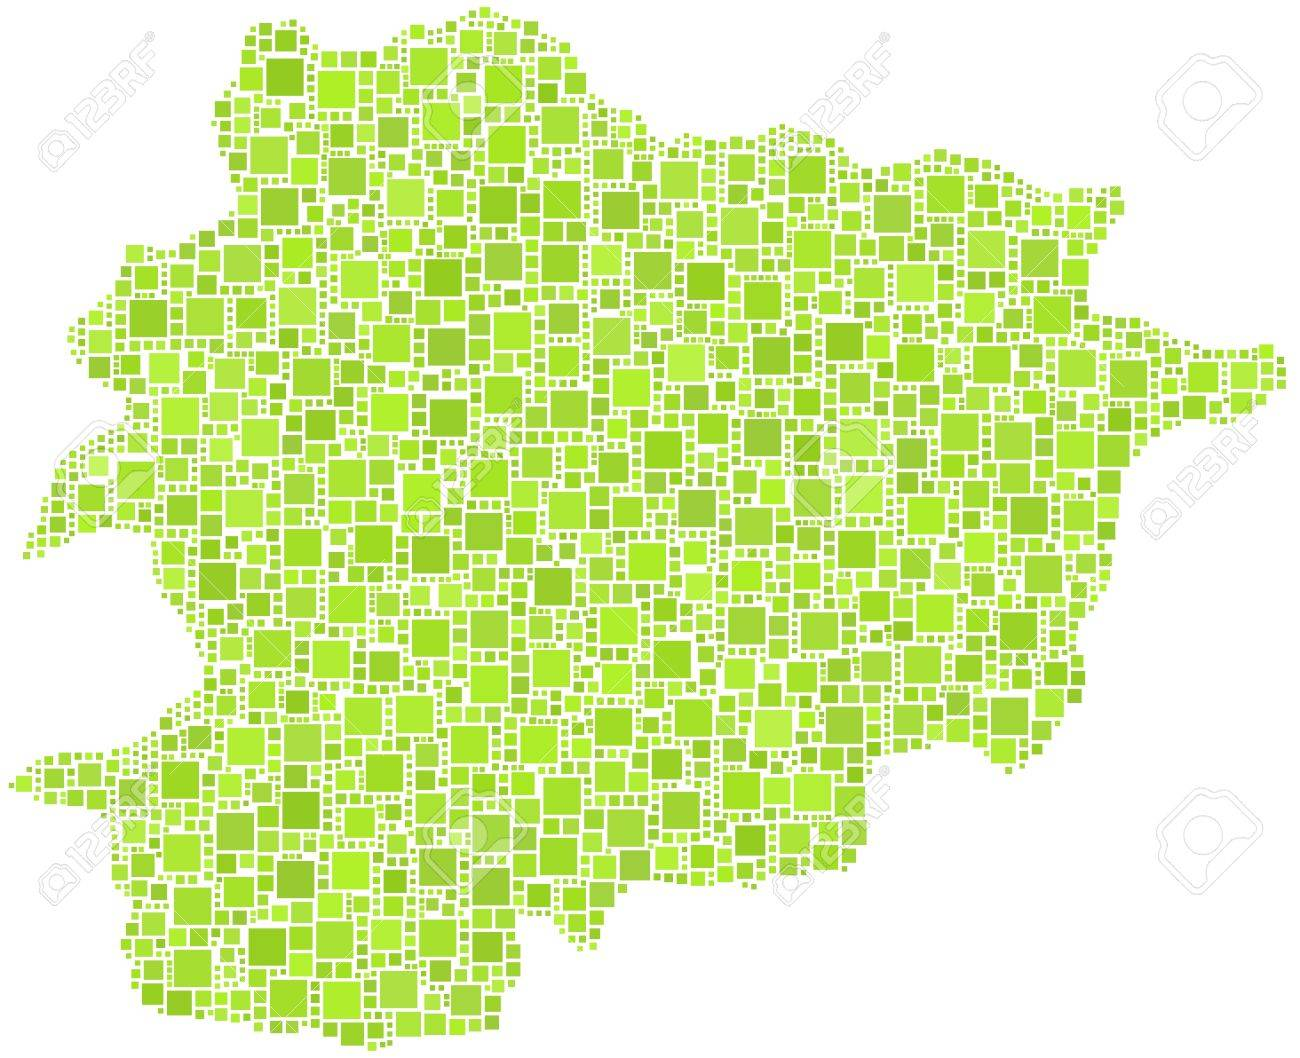 Principality of Andorra - Europe - in a mosaic of green squares Stock Vector - 21991736